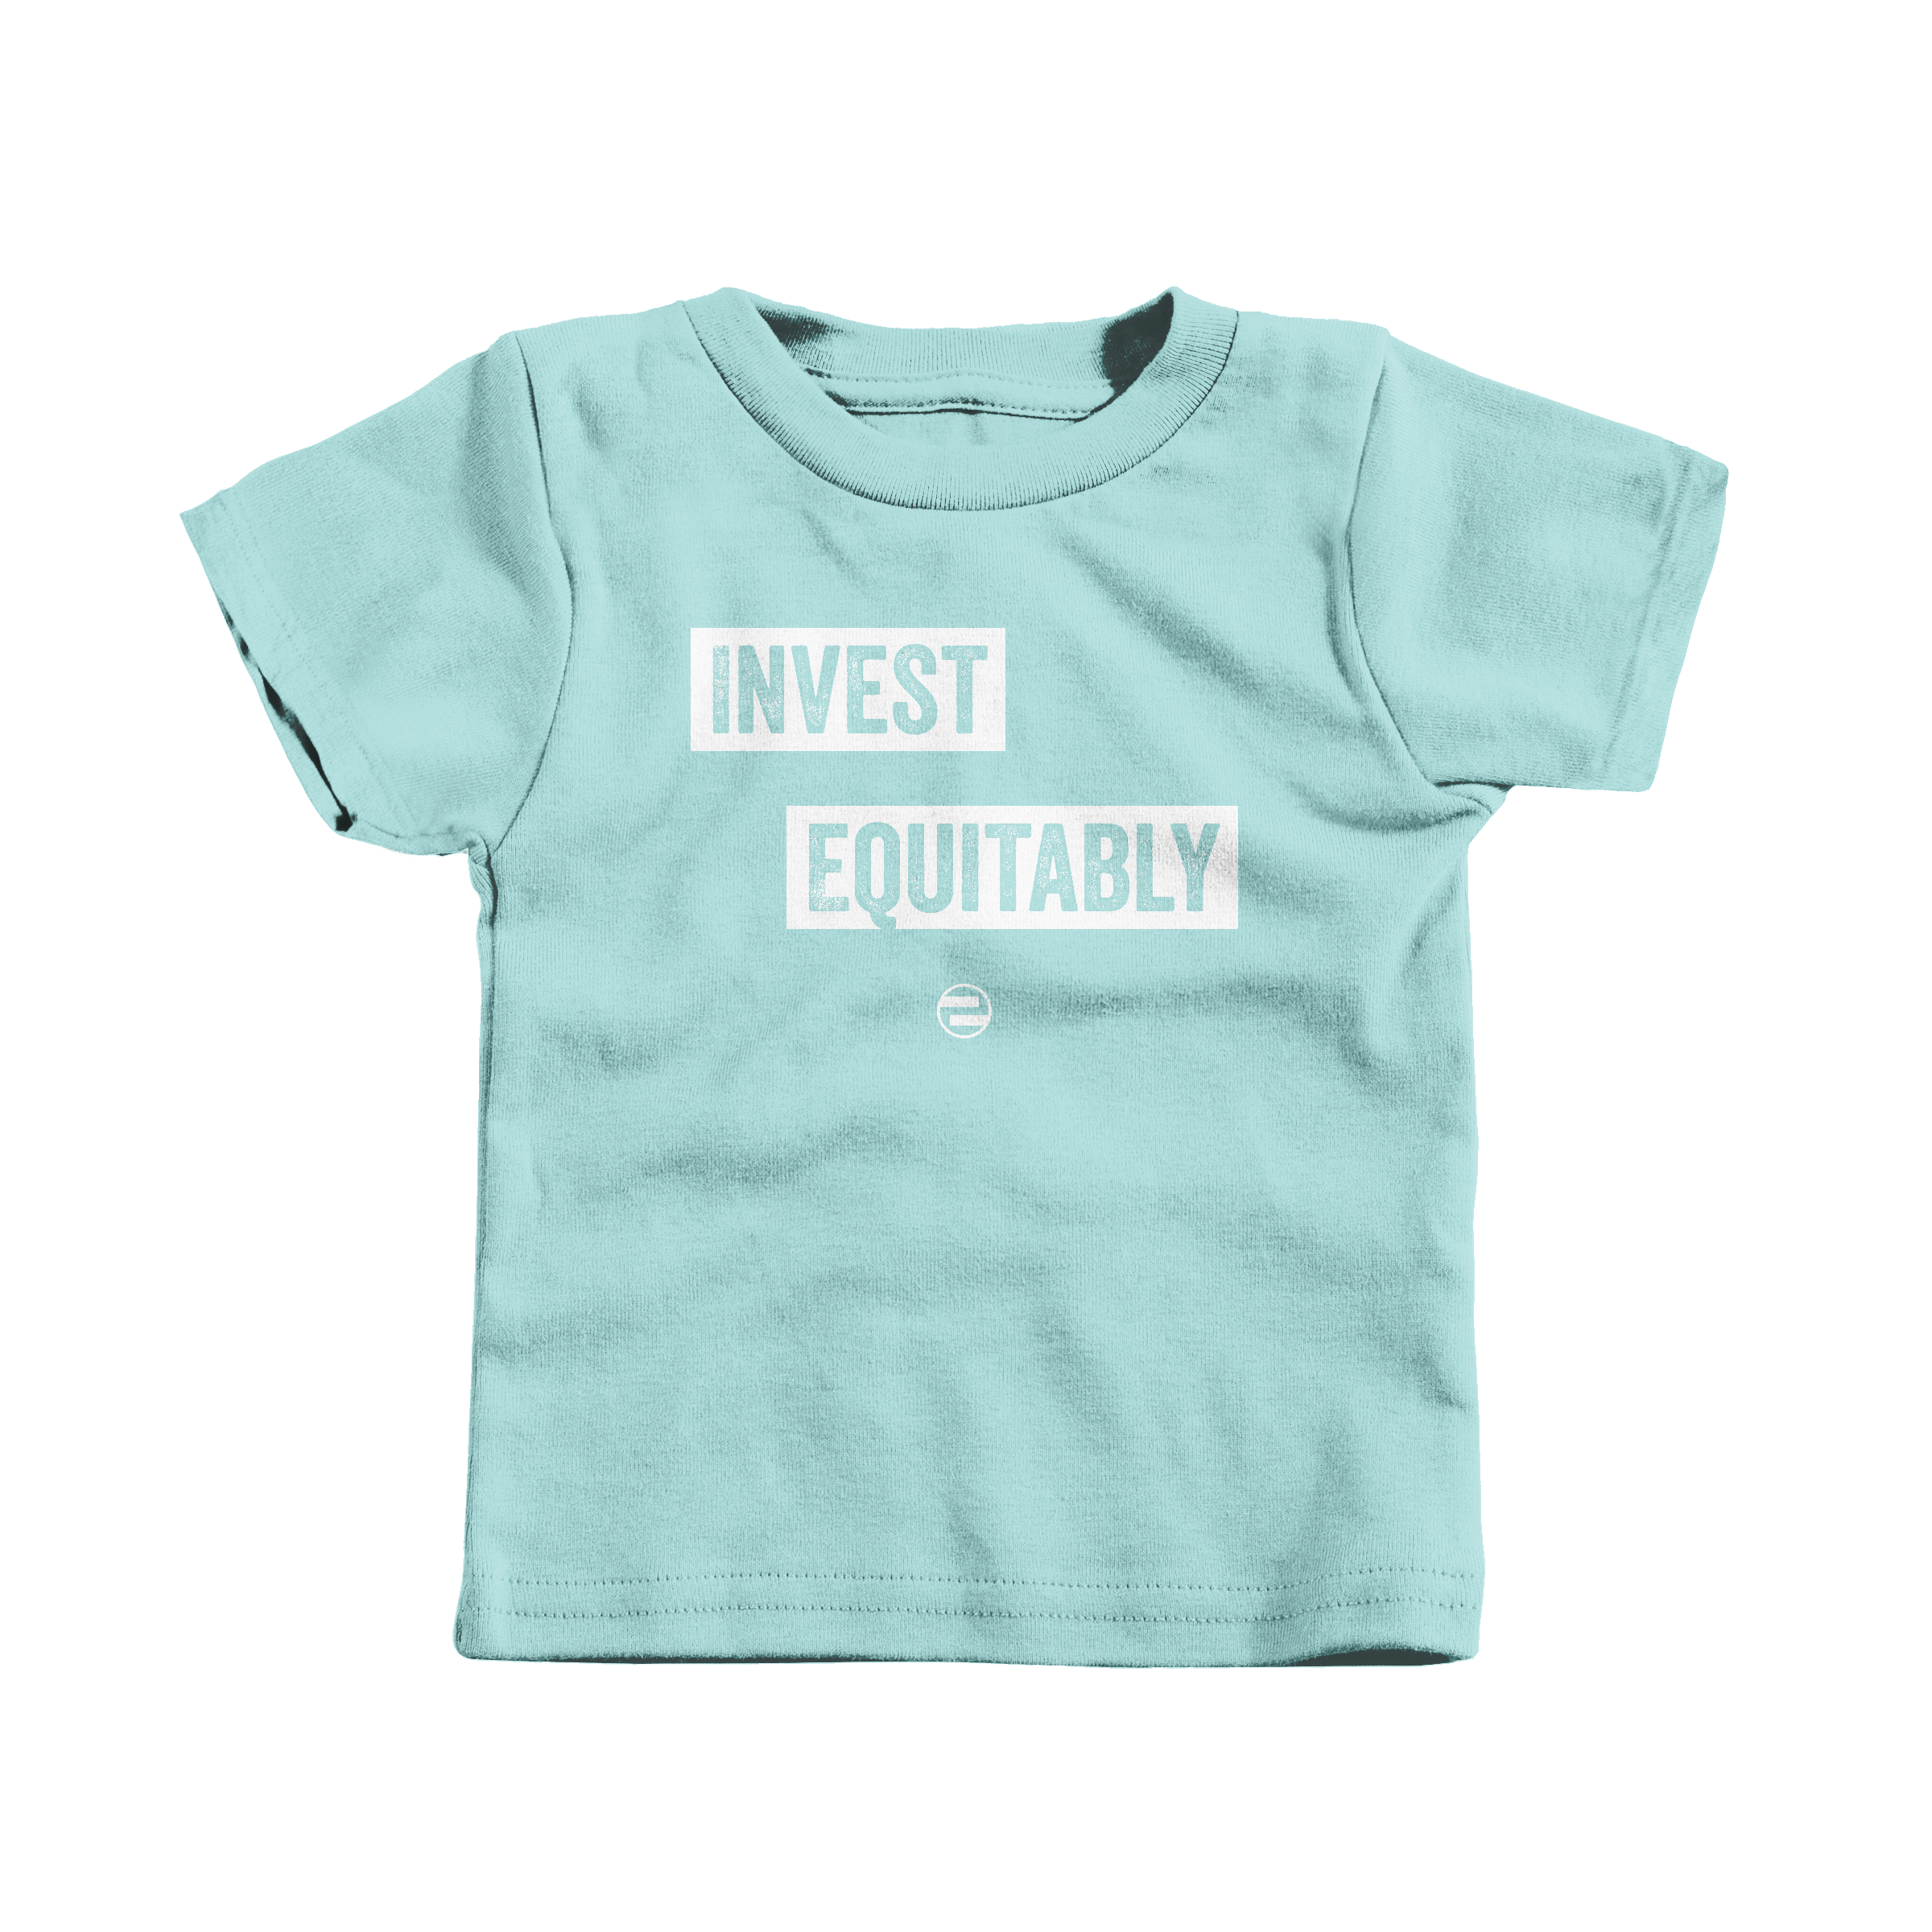 "GenEquality ""Invest Equitably"" Kids Tee & Onesie Chill (T-Shirt)"